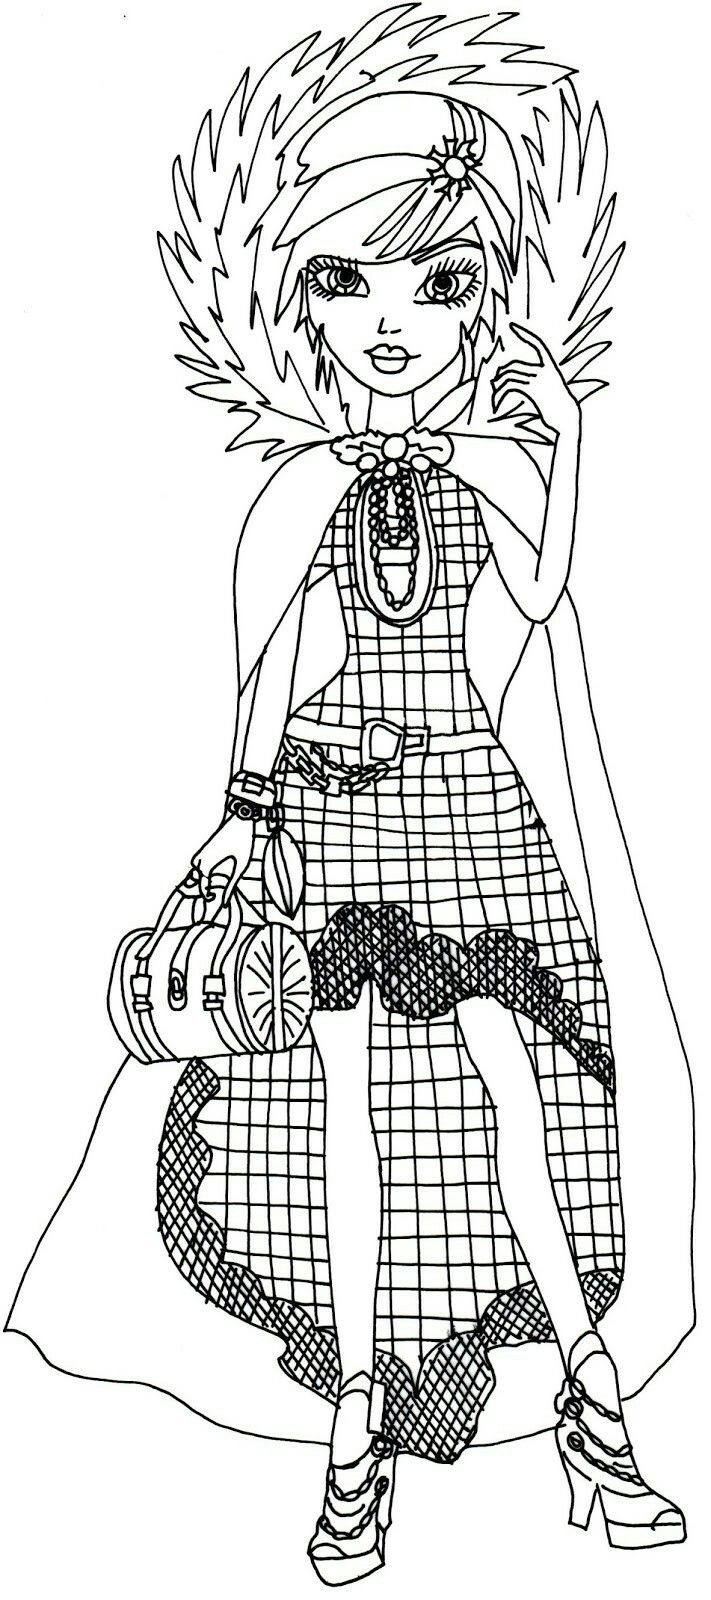 Printable coloring pages ever after high - Free Printable Ever After High Coloring Pages Cerise Hood